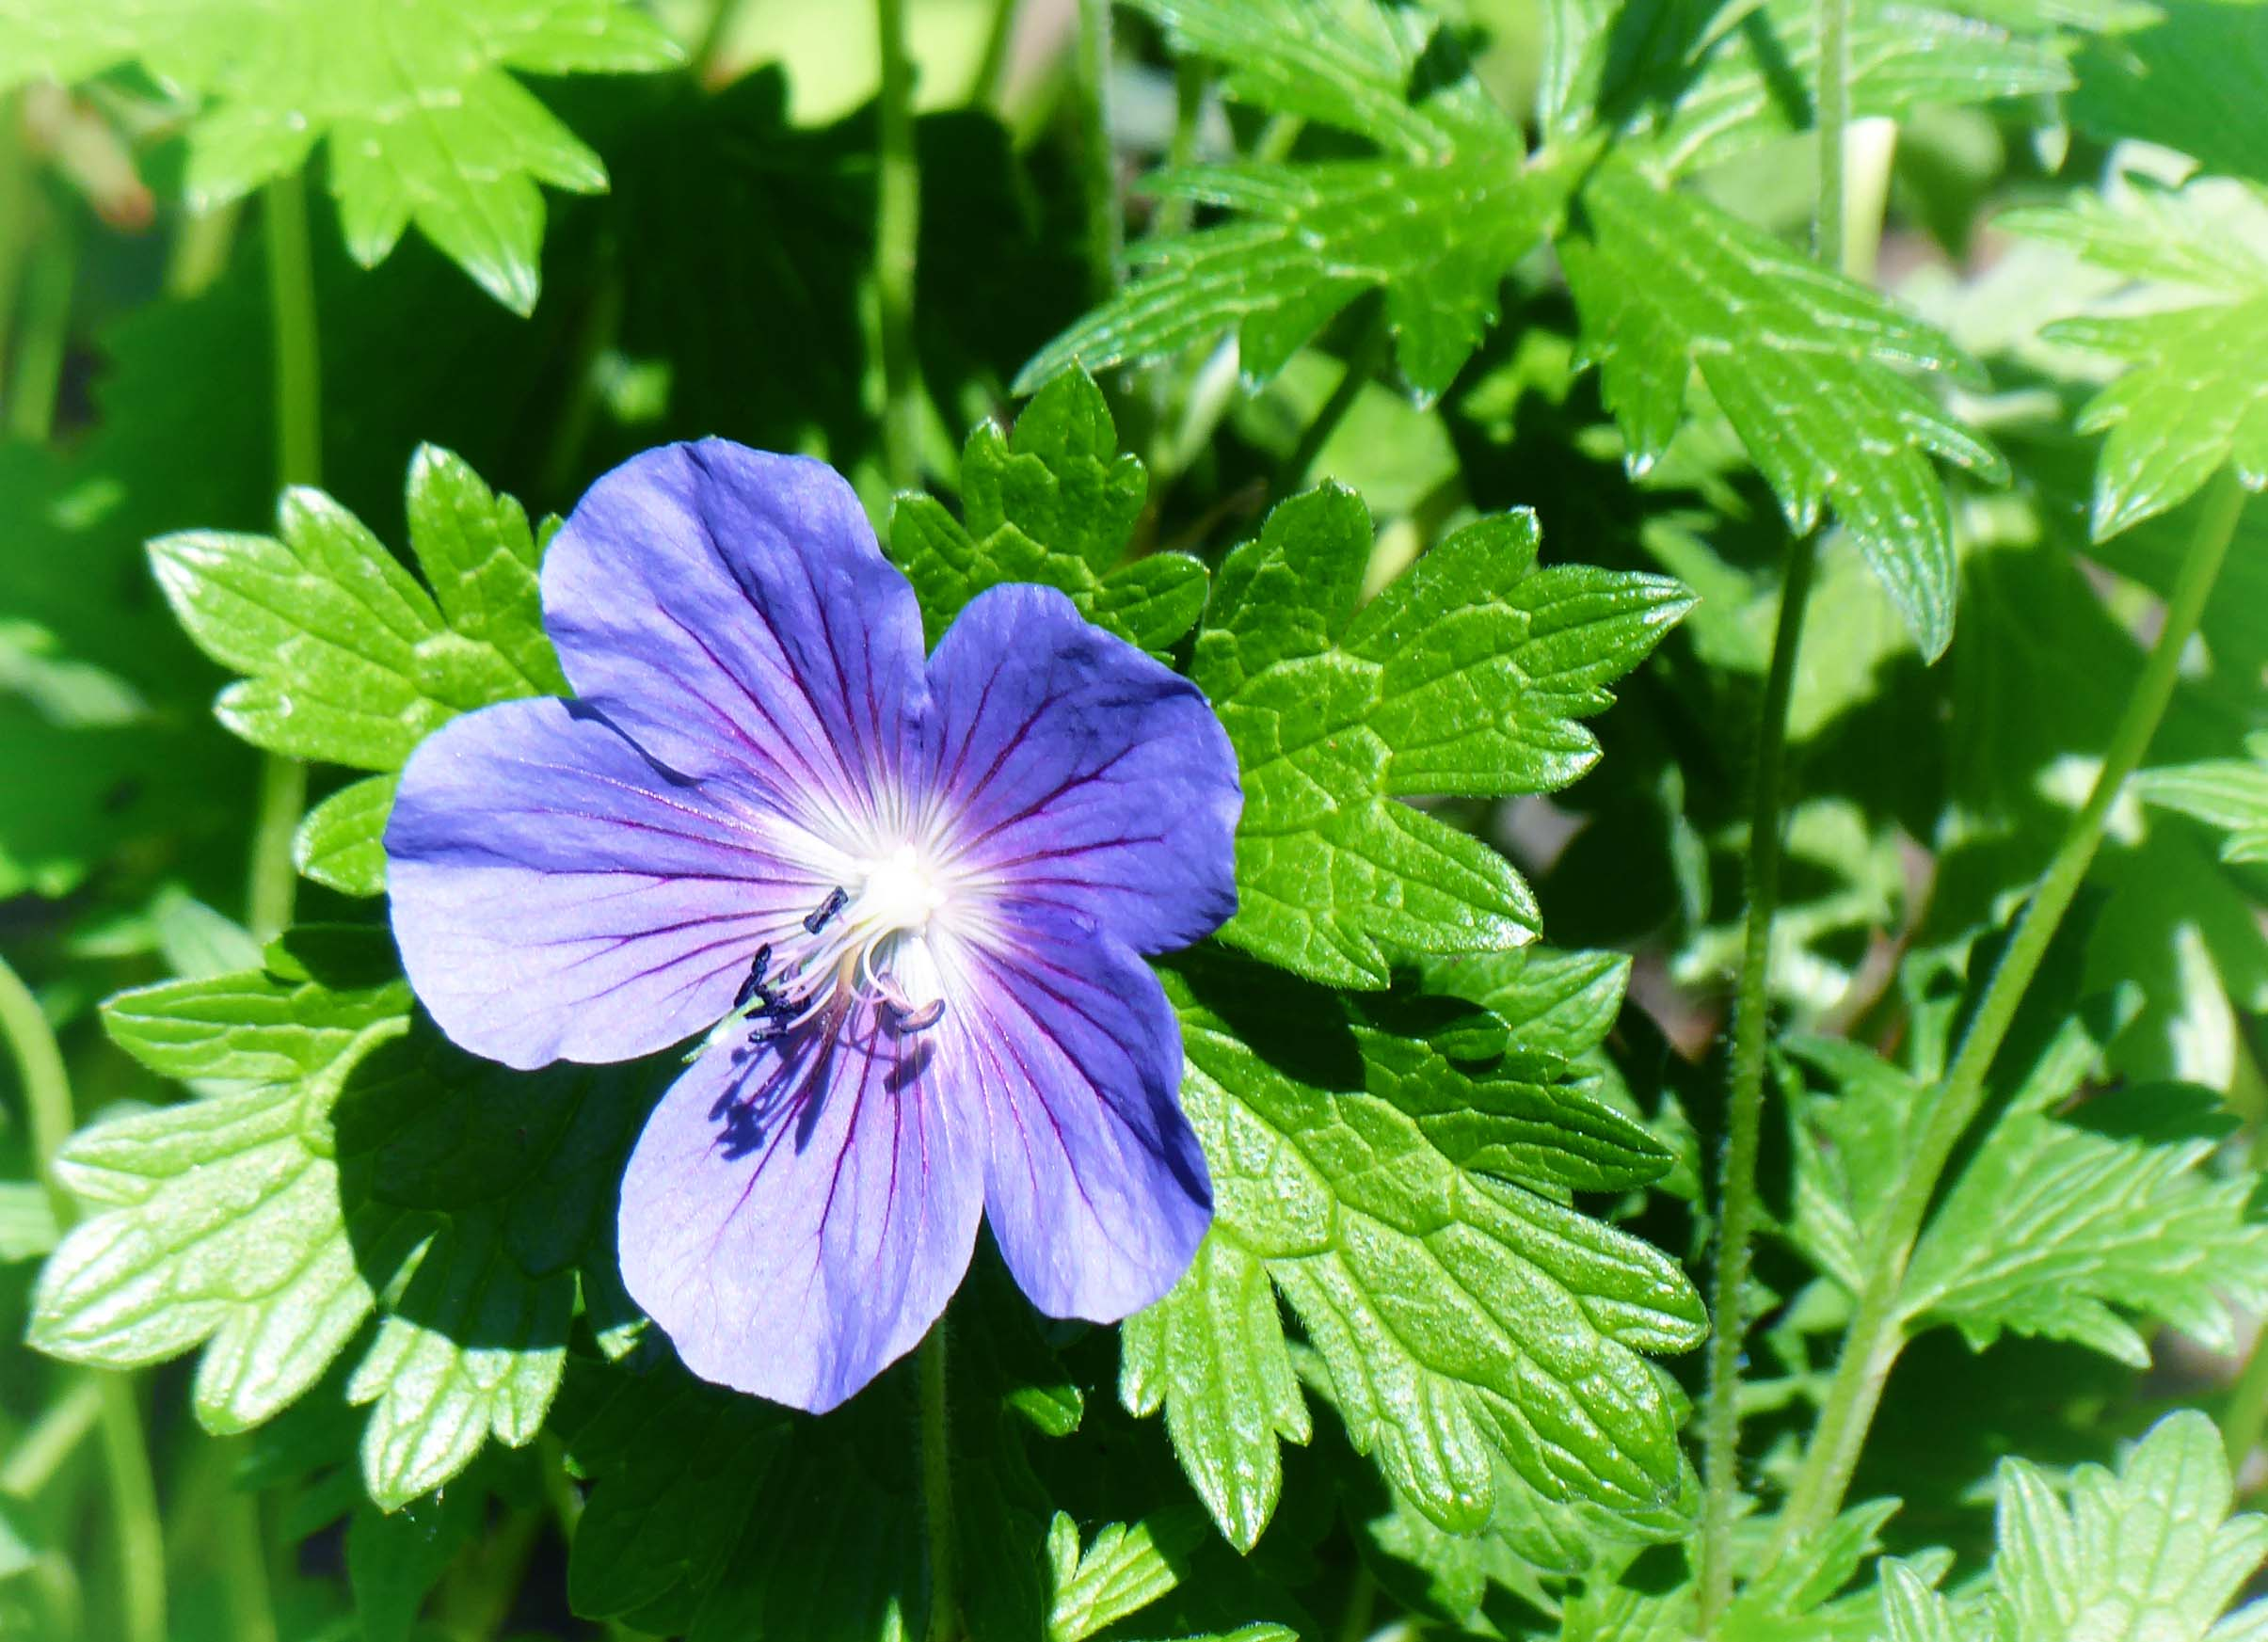 Mauve flower and green leaves